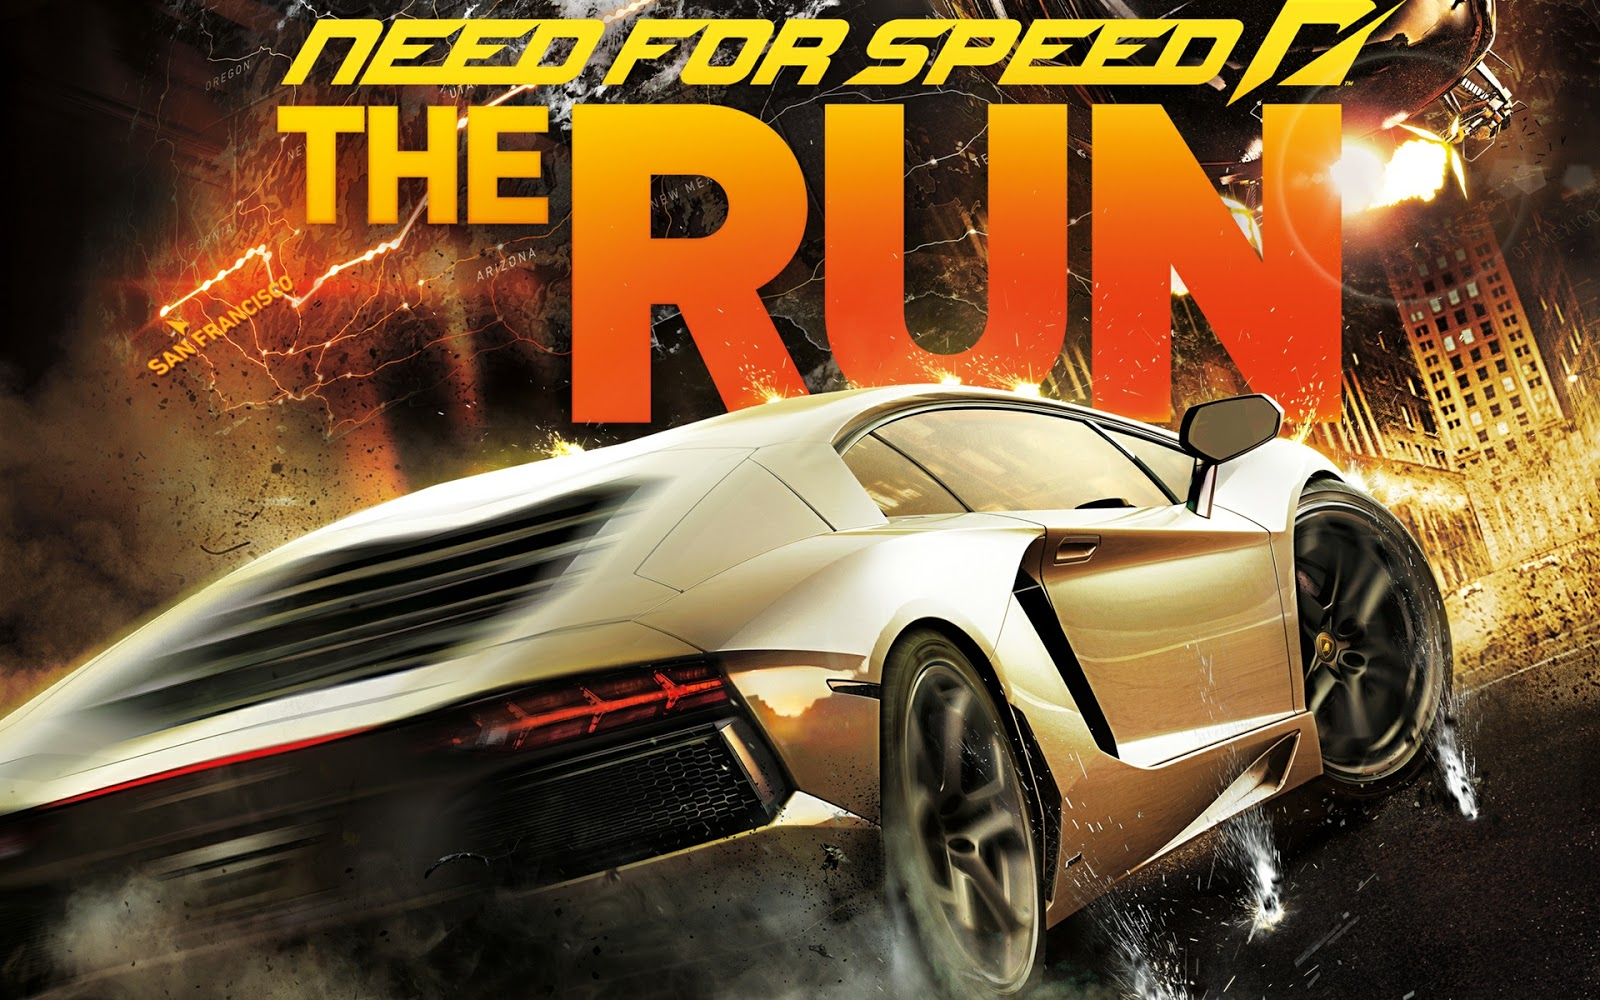 NIRTONS : NFS THE RUN Full Game Download